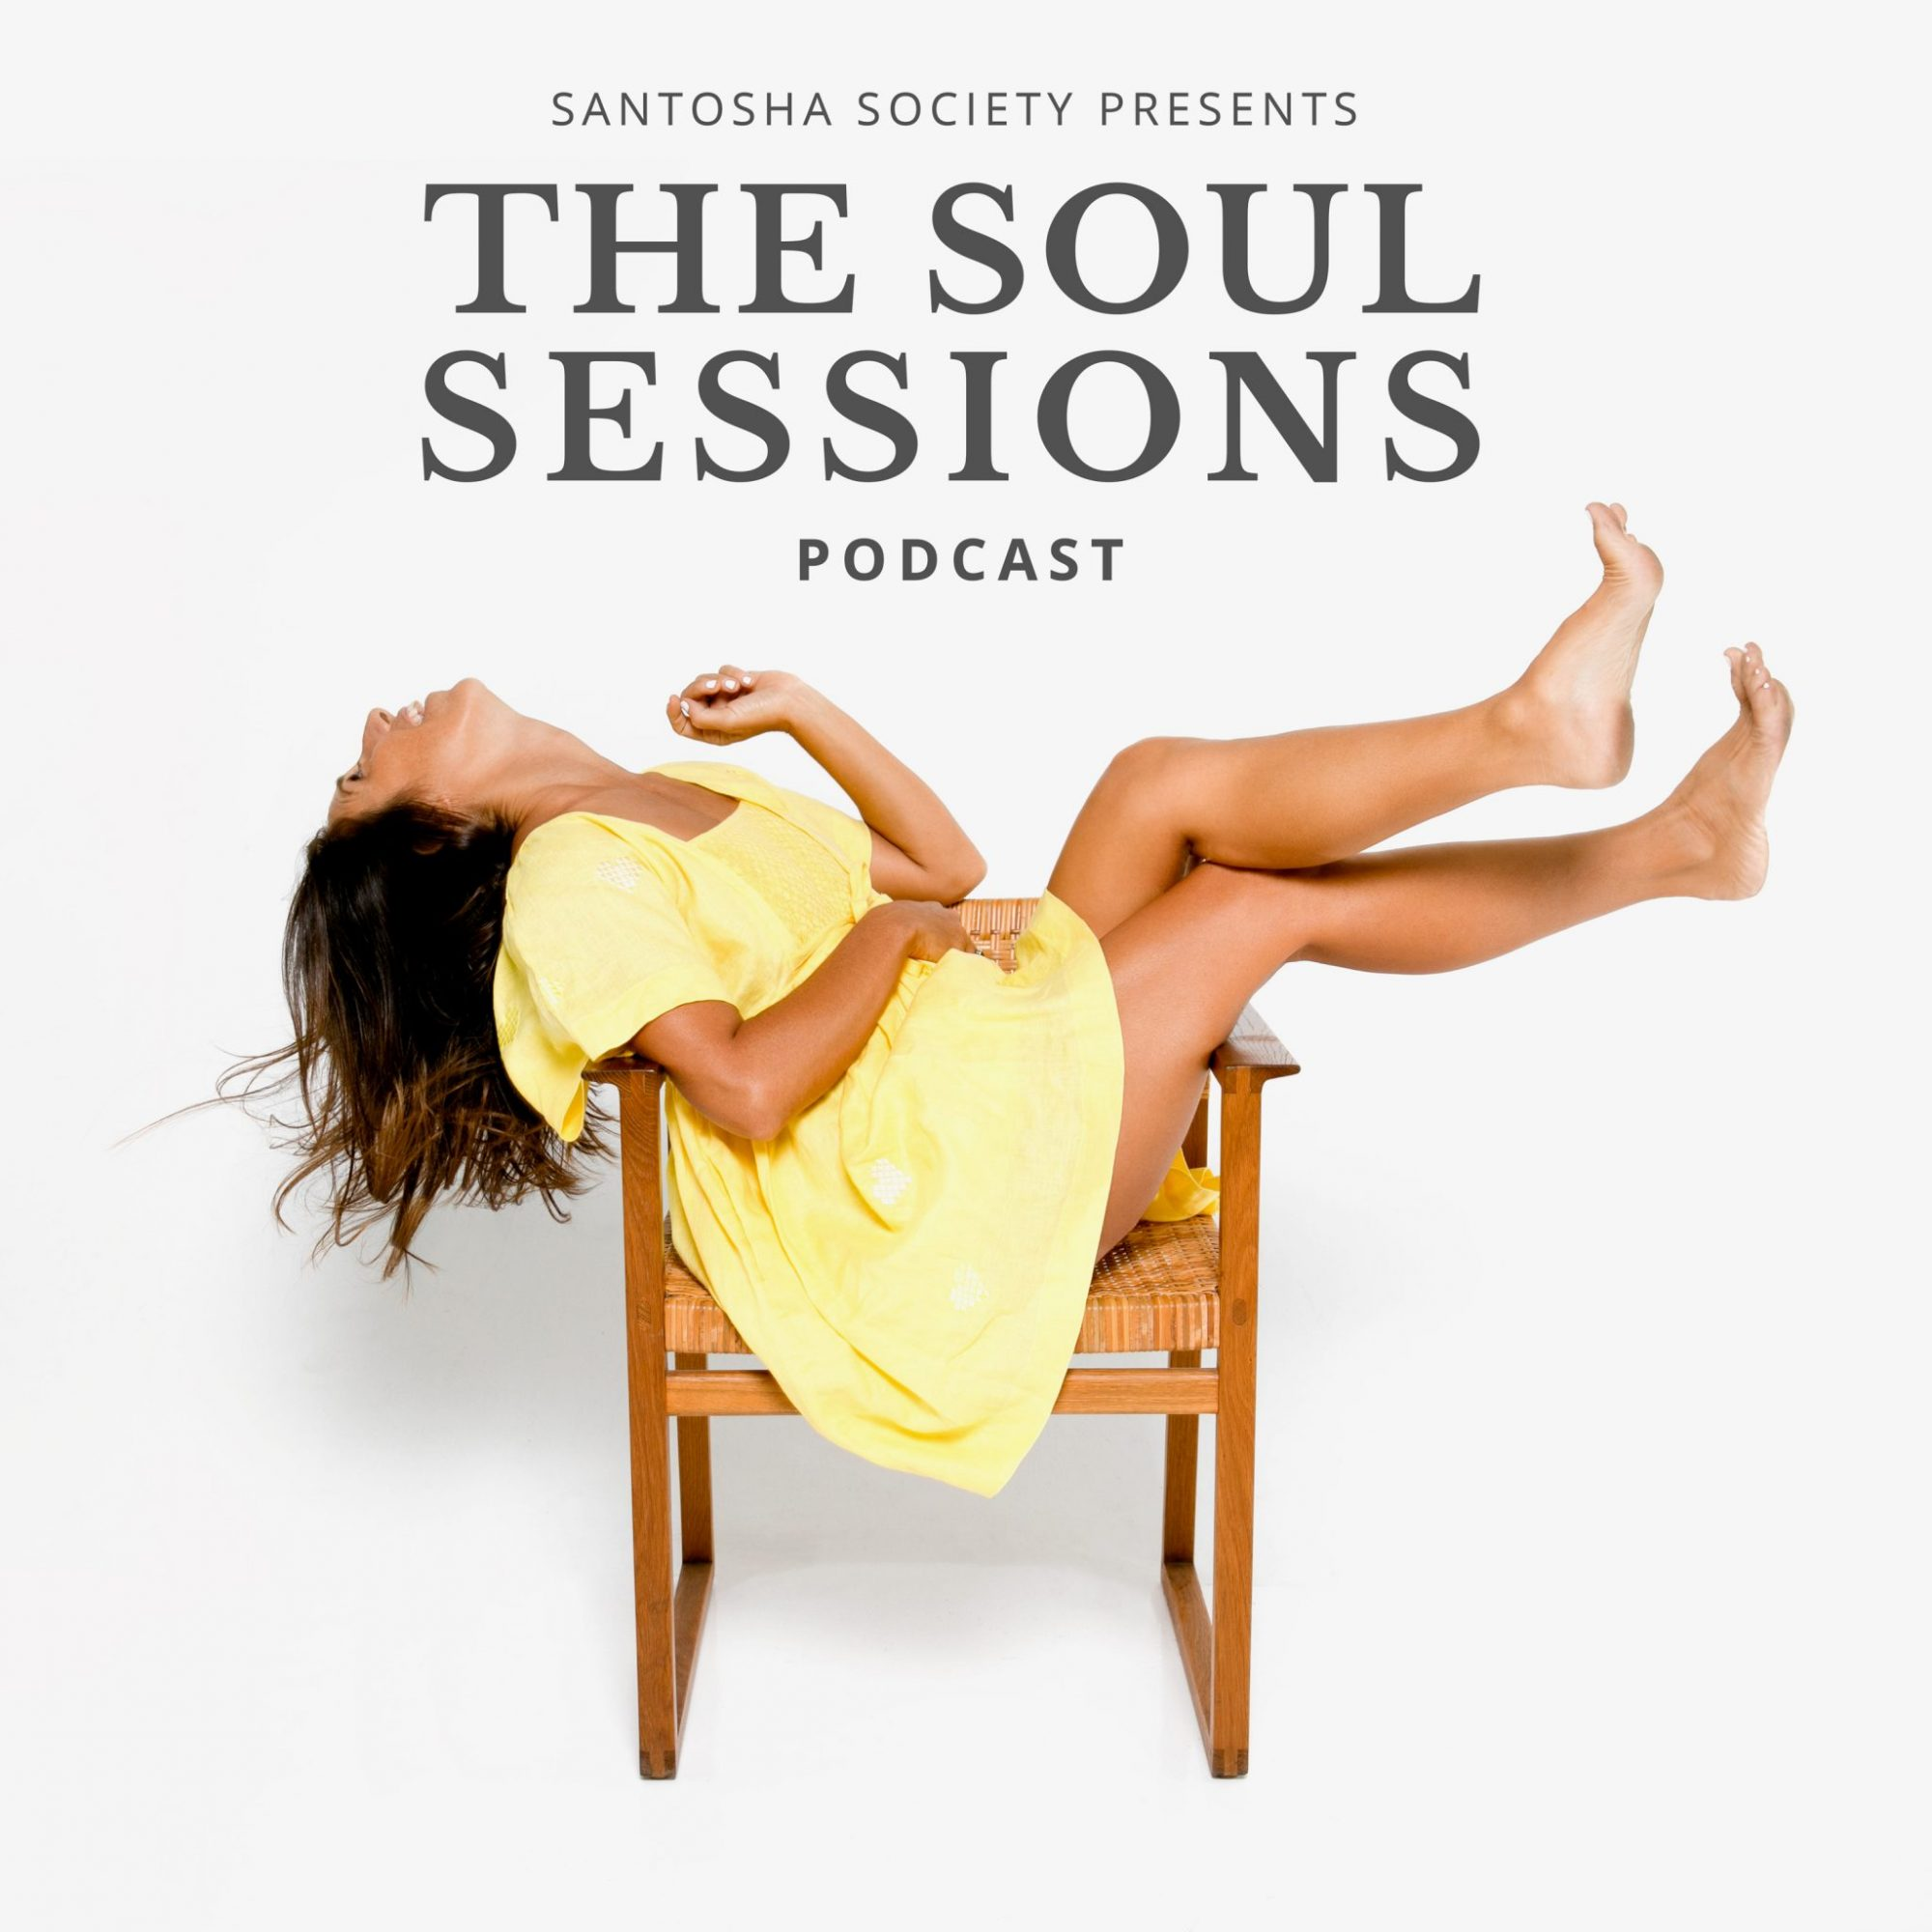 The Soul Sessions Podcast